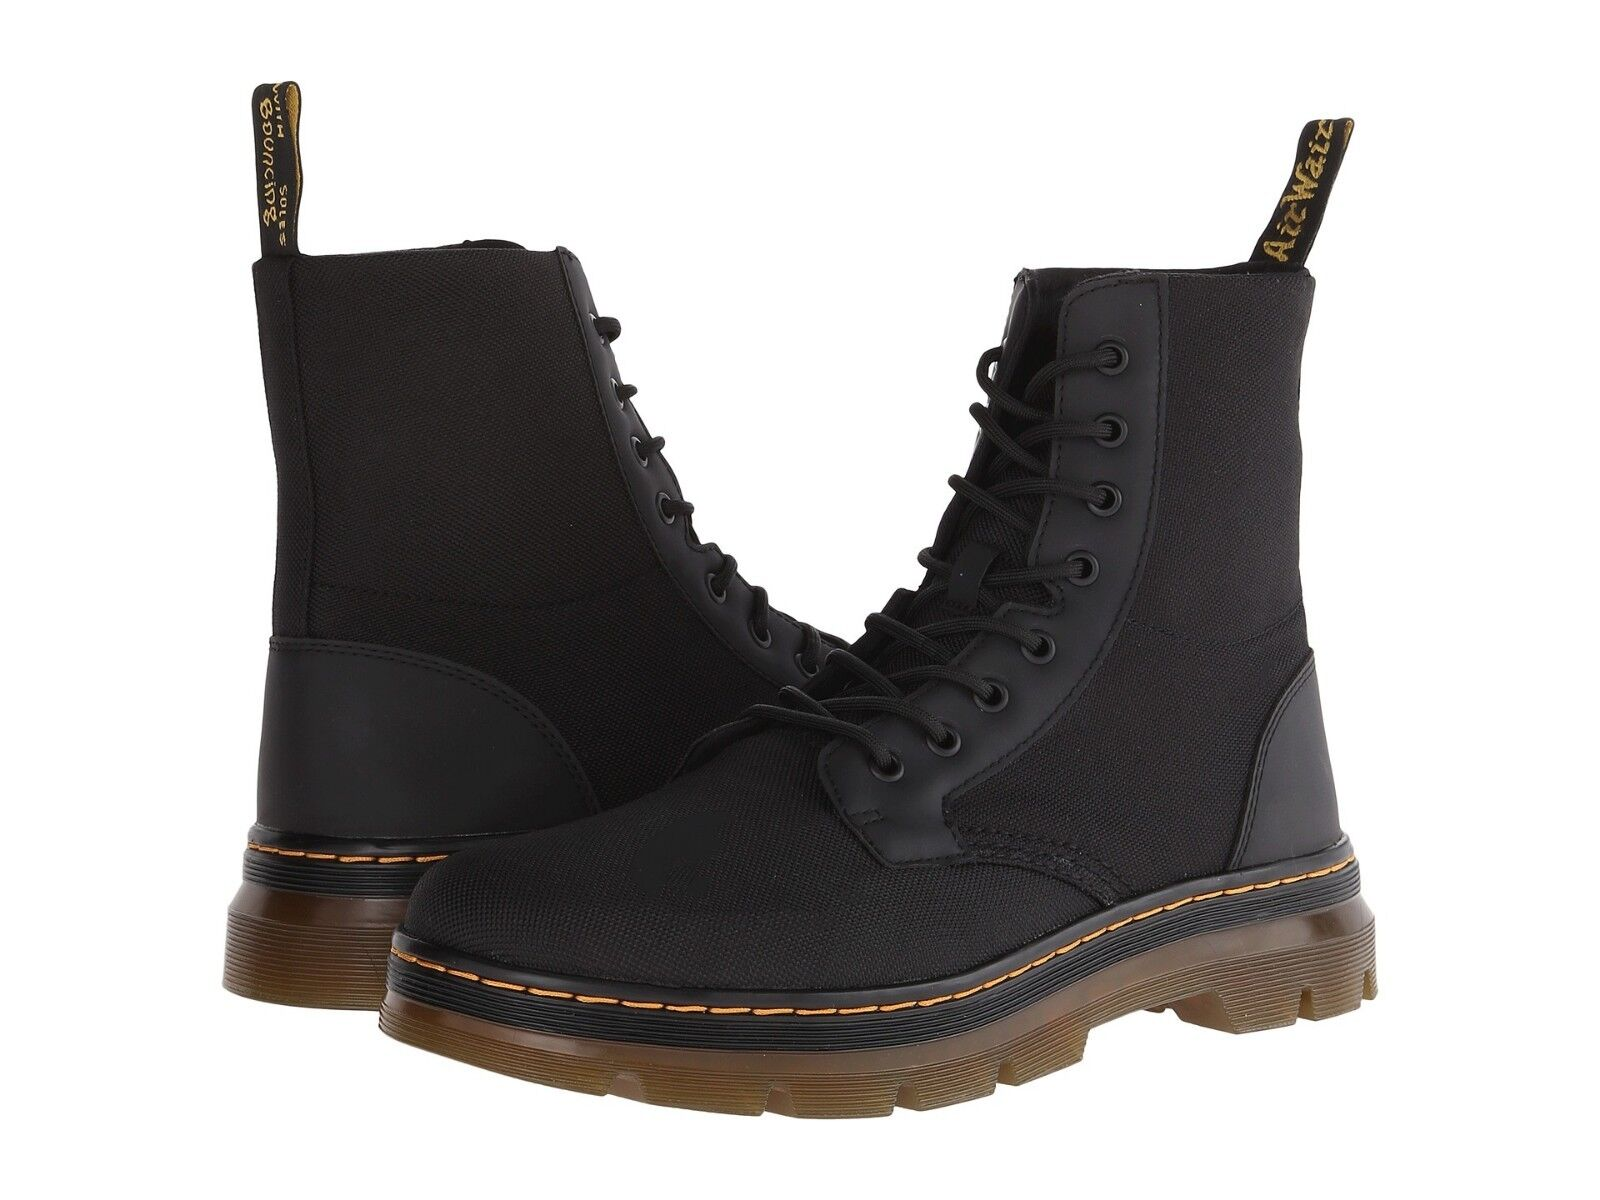 Men's Shoes Dr. Martens COMBS 8 Eye Nylon Combat Boots 16607001 BLACK